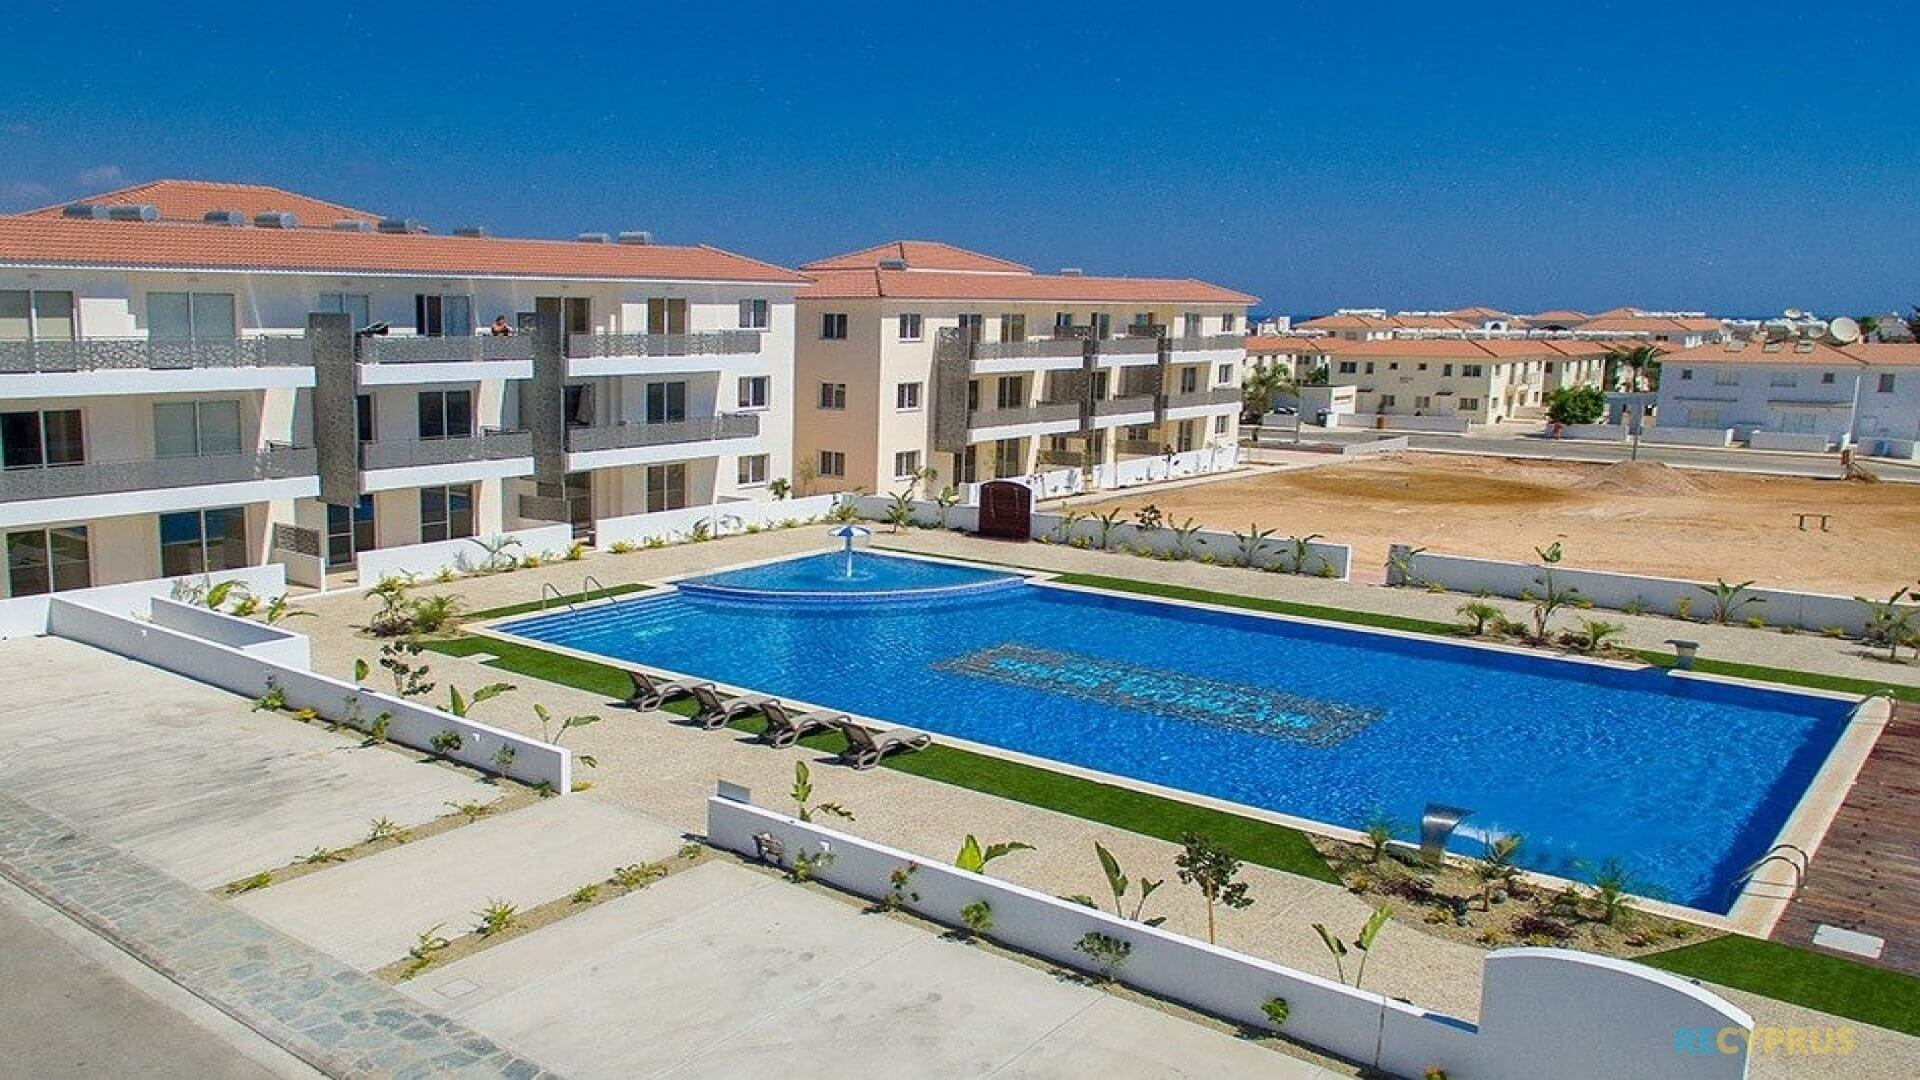 Apartment for sale Kapparis Famagusta Cyprus 2 3517